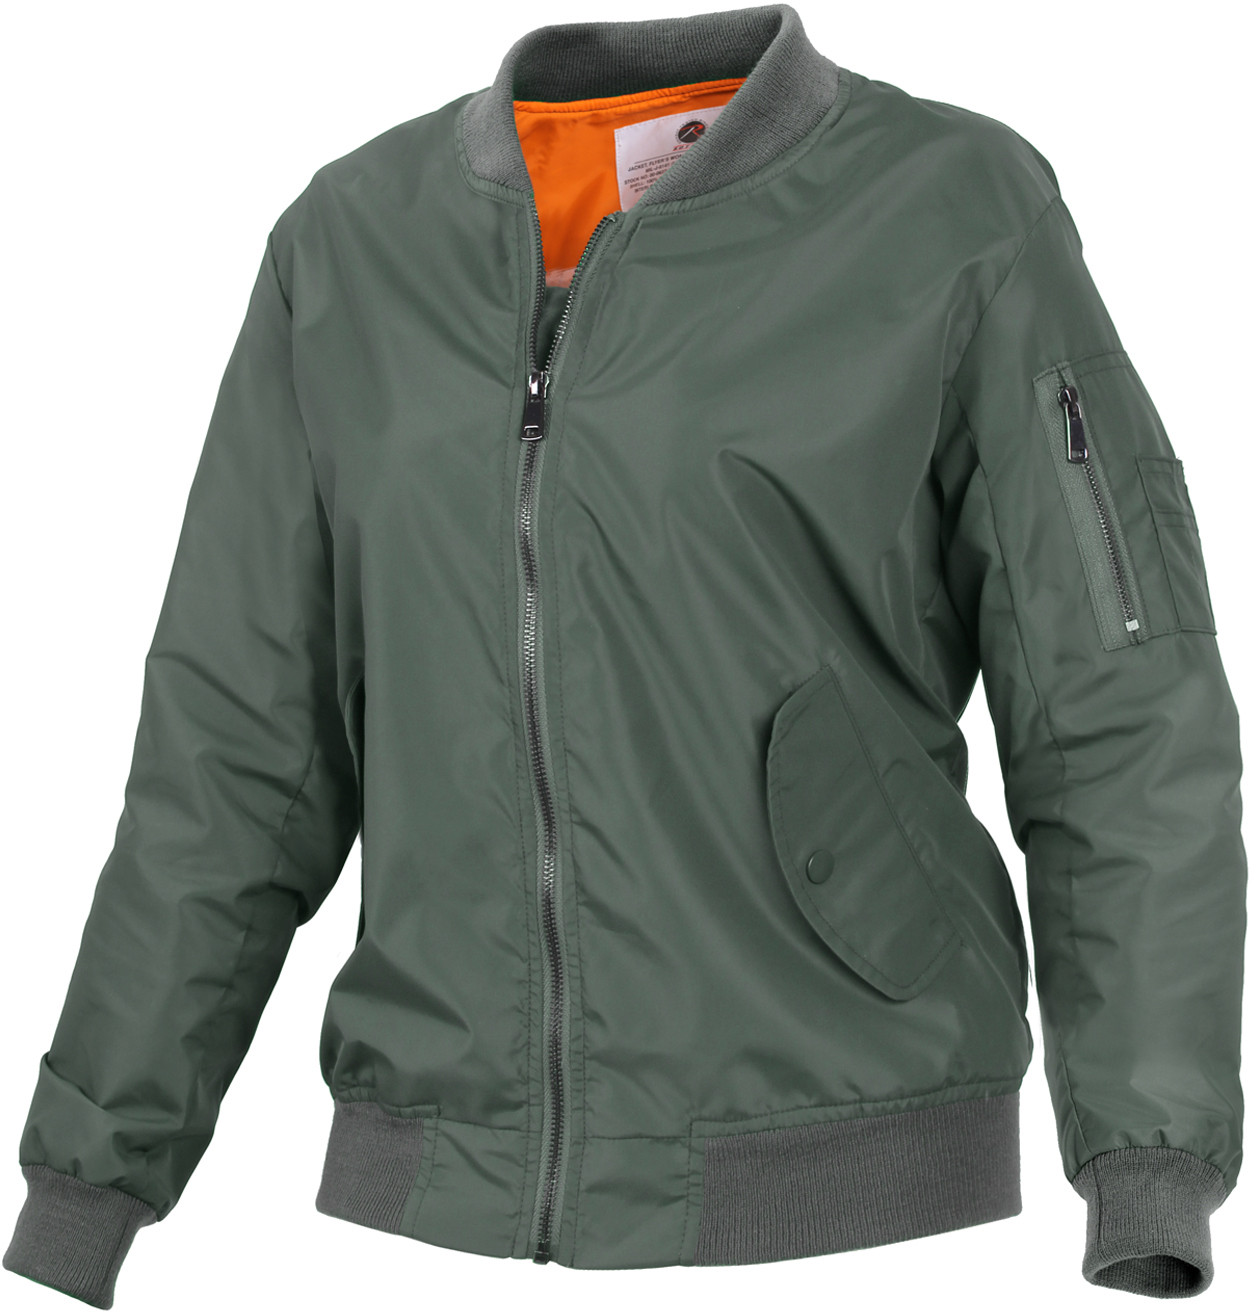 Womens flying jacket